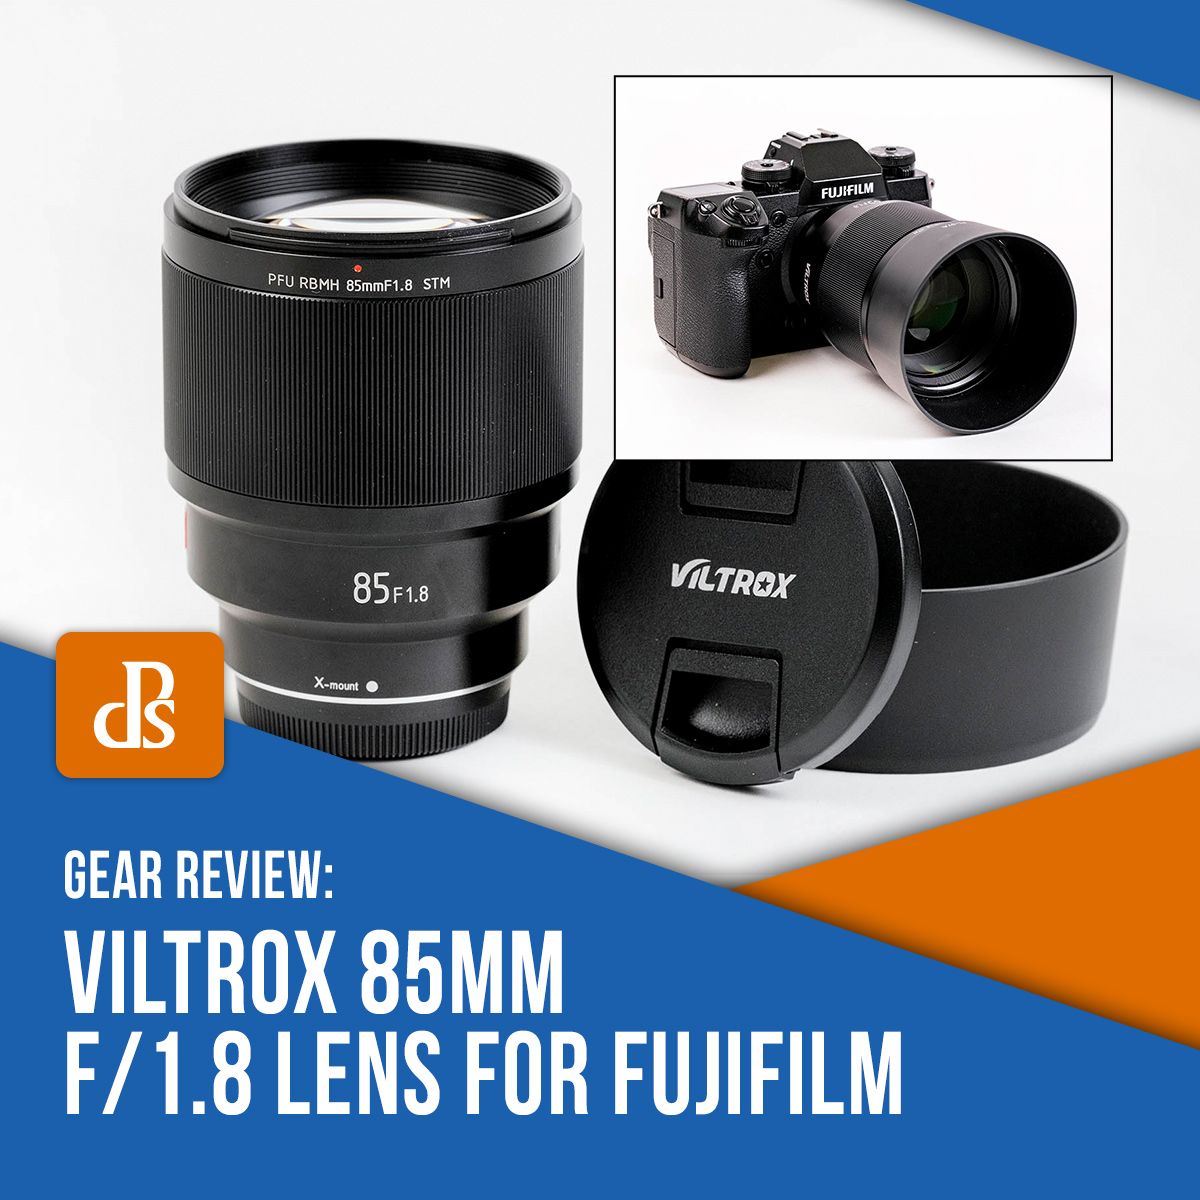 Viltrox 85mm f/1.8 Lens for Fujifilm Review